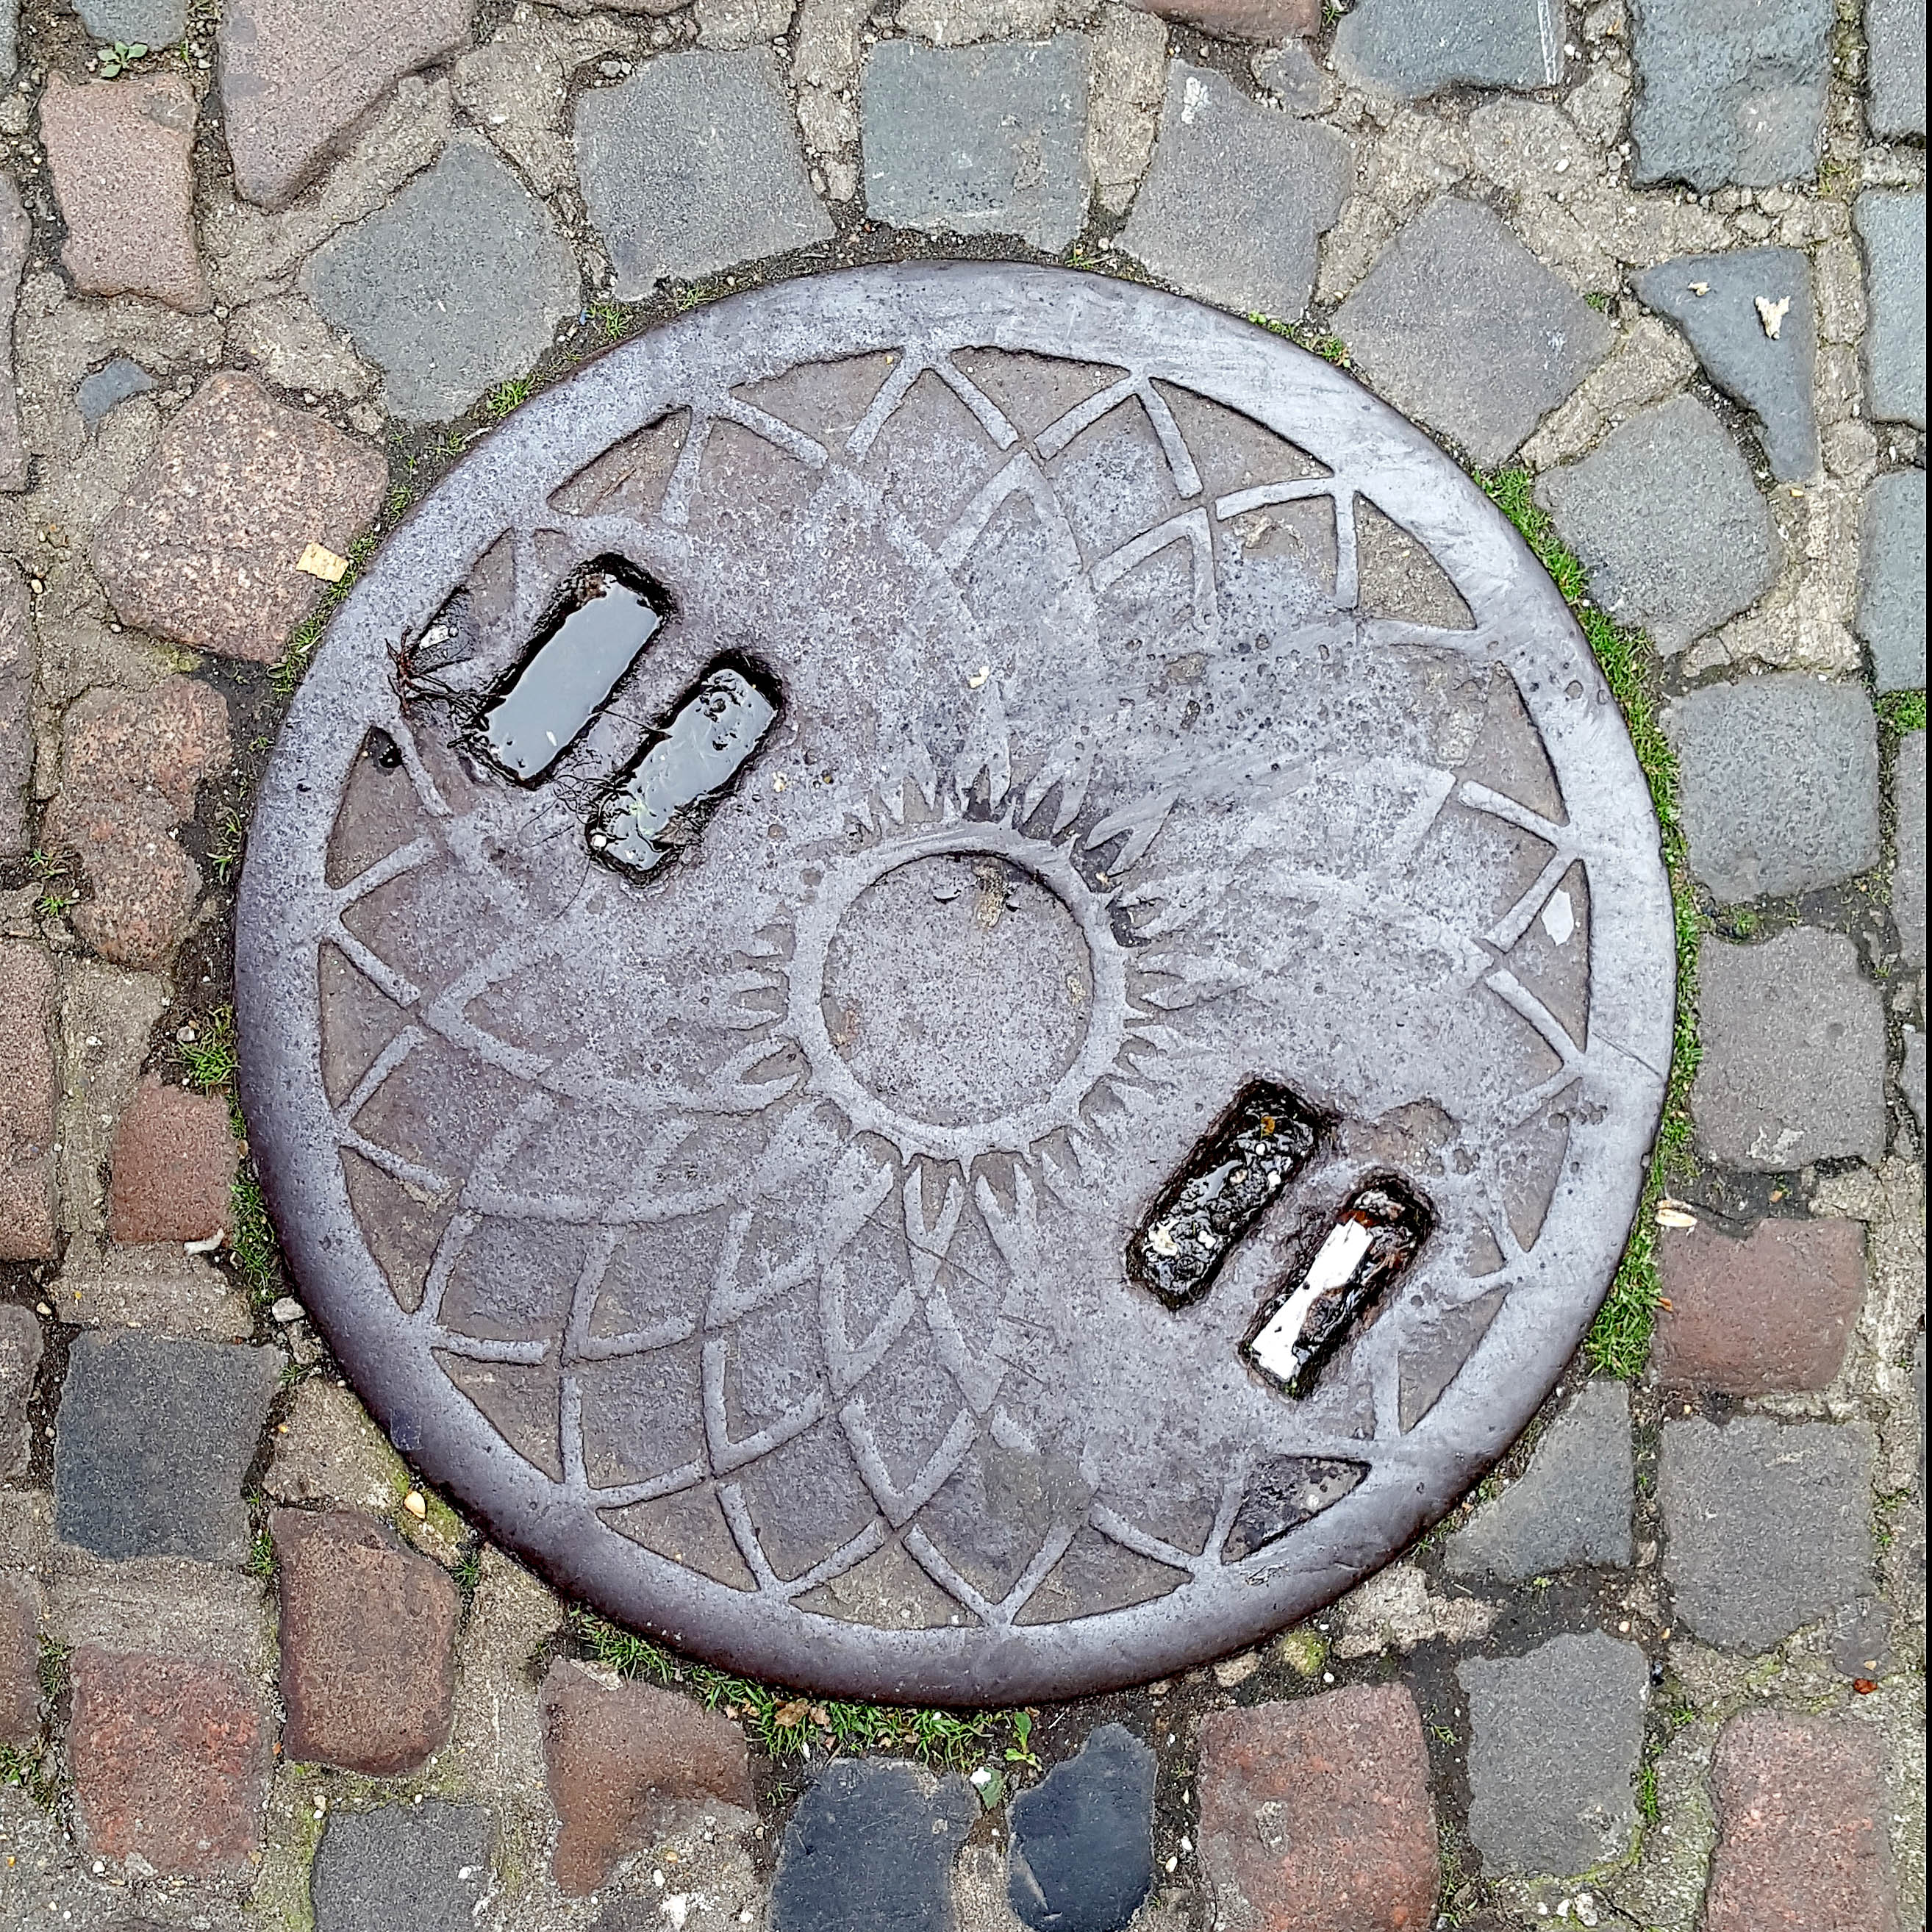 Manhole Cover, London - Cast iron with criss cross geometric floral pattern